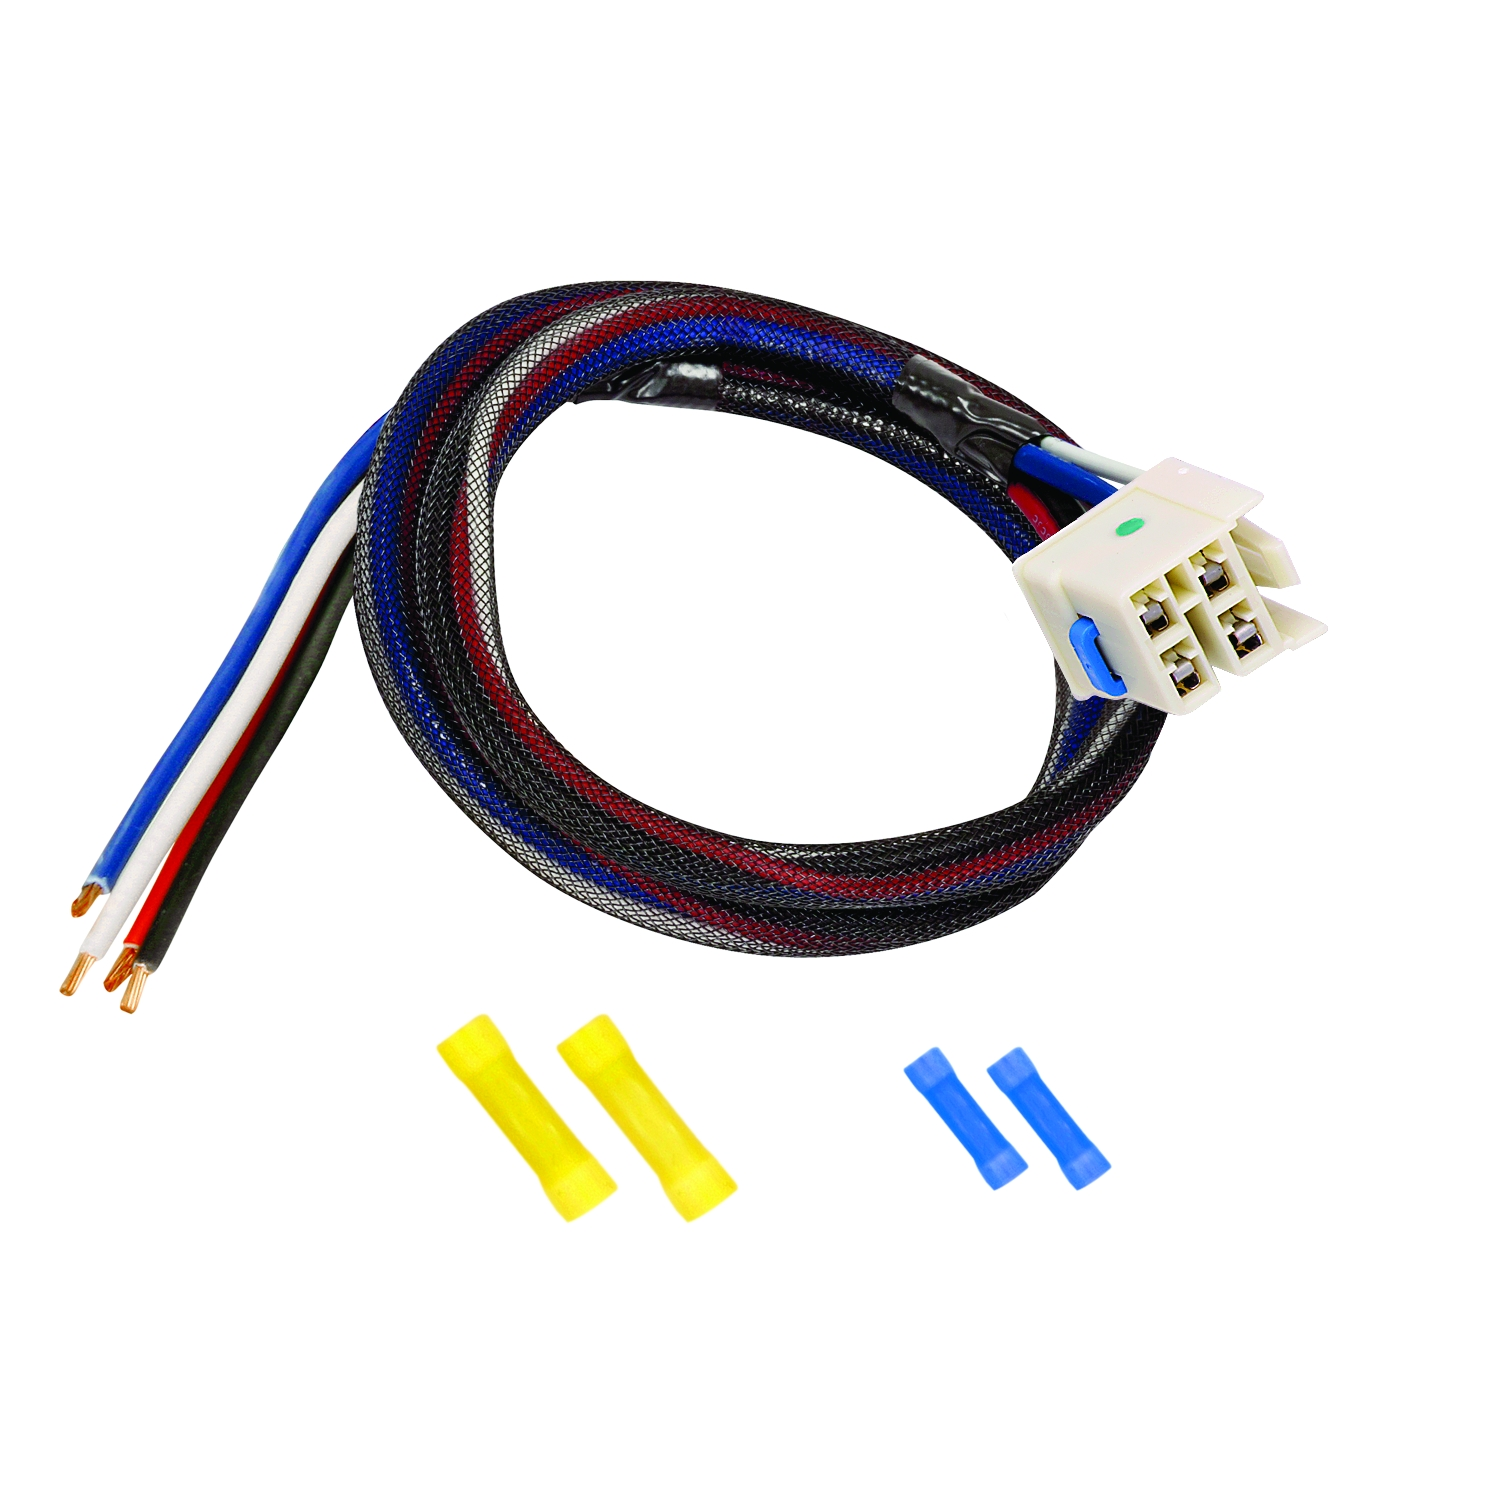 Tekonsha 3016 S Trailer Brake System Connector Harness Plug Control Wiring For Use With All Systems In Type 1